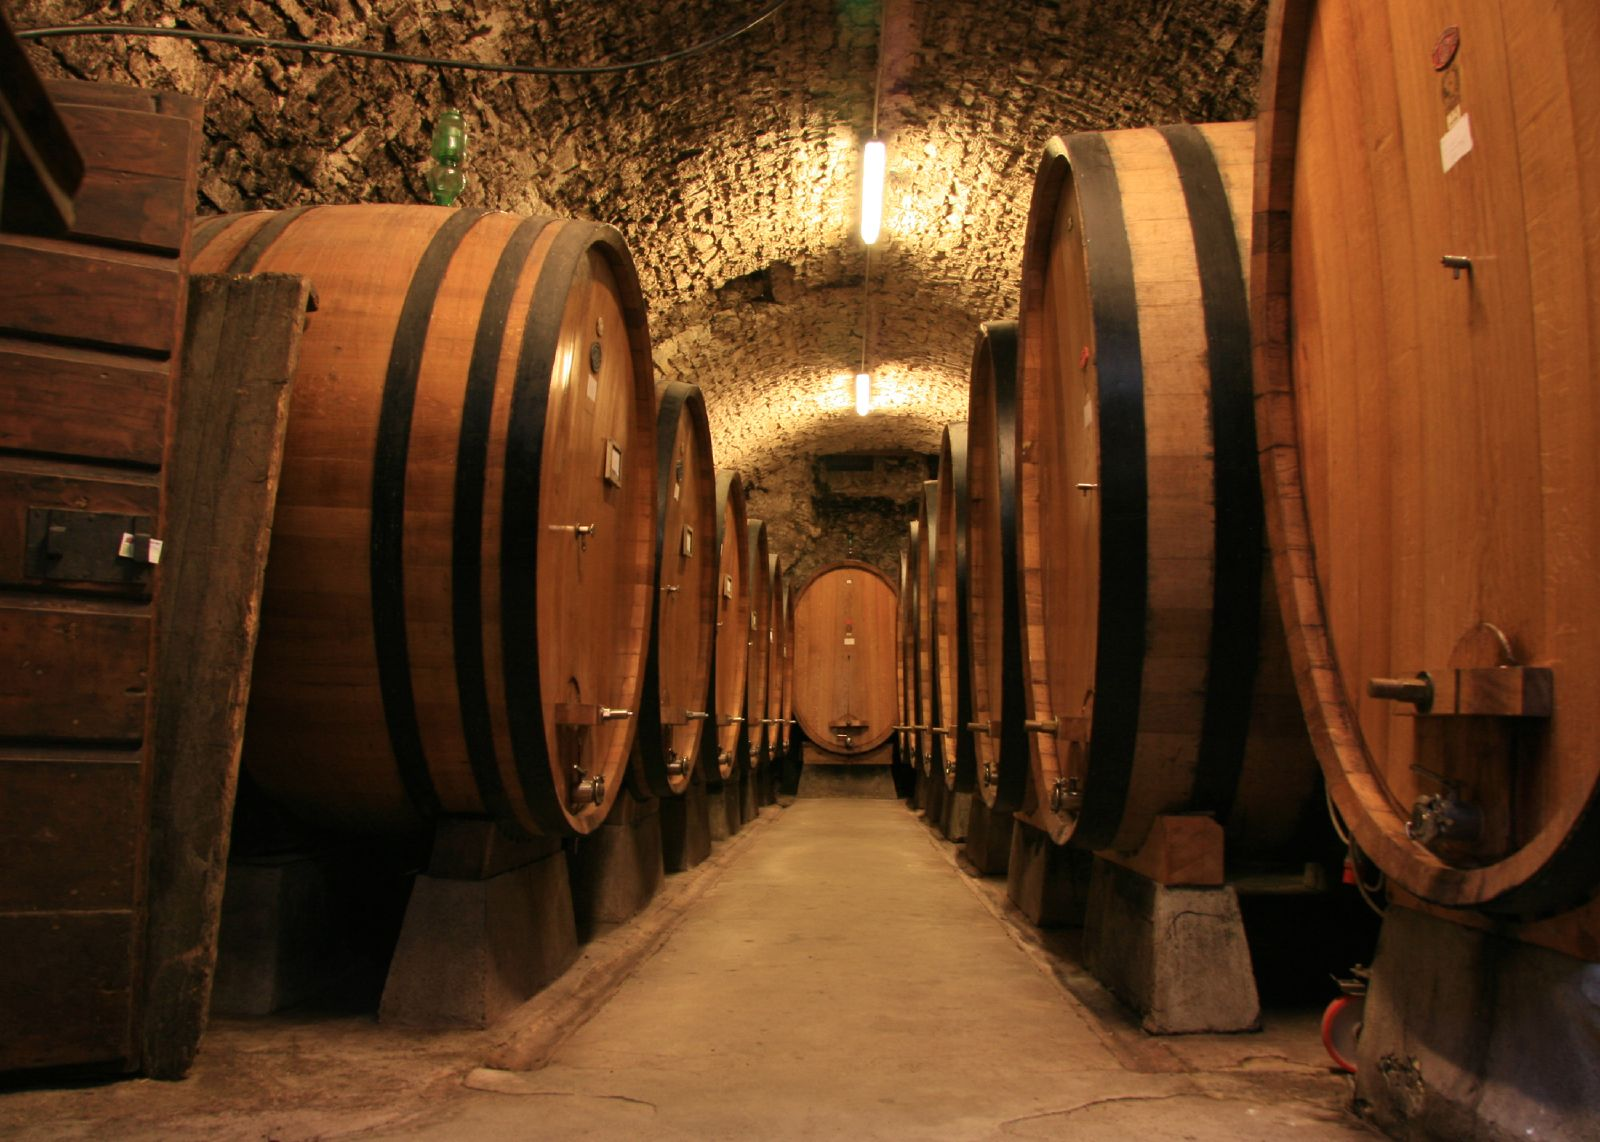 Oak Barrels used in Fermentation Process of Cabernet Sauvignon